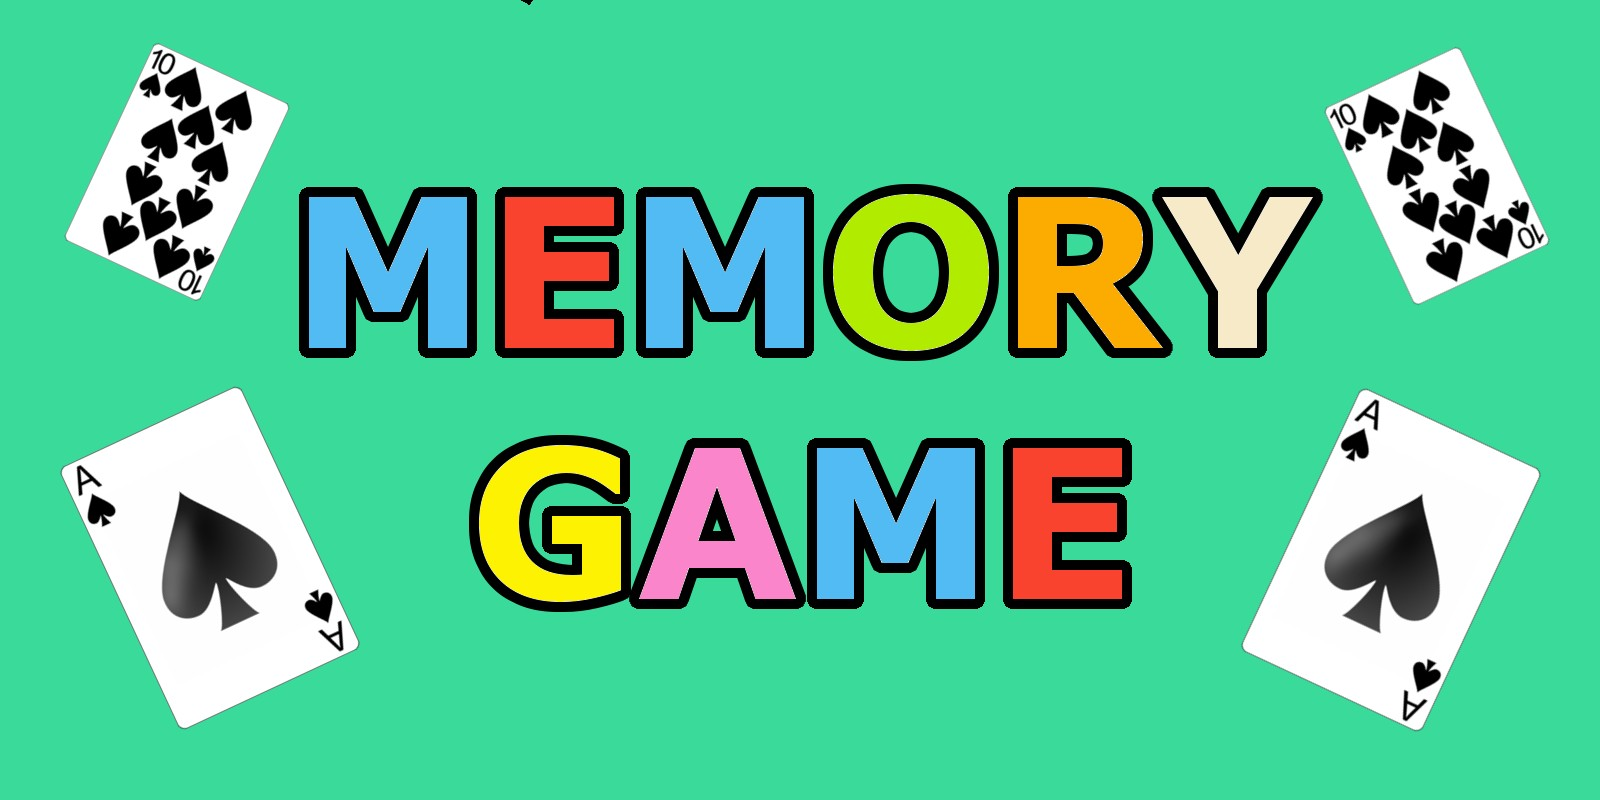 Memory Game - Android Source Code